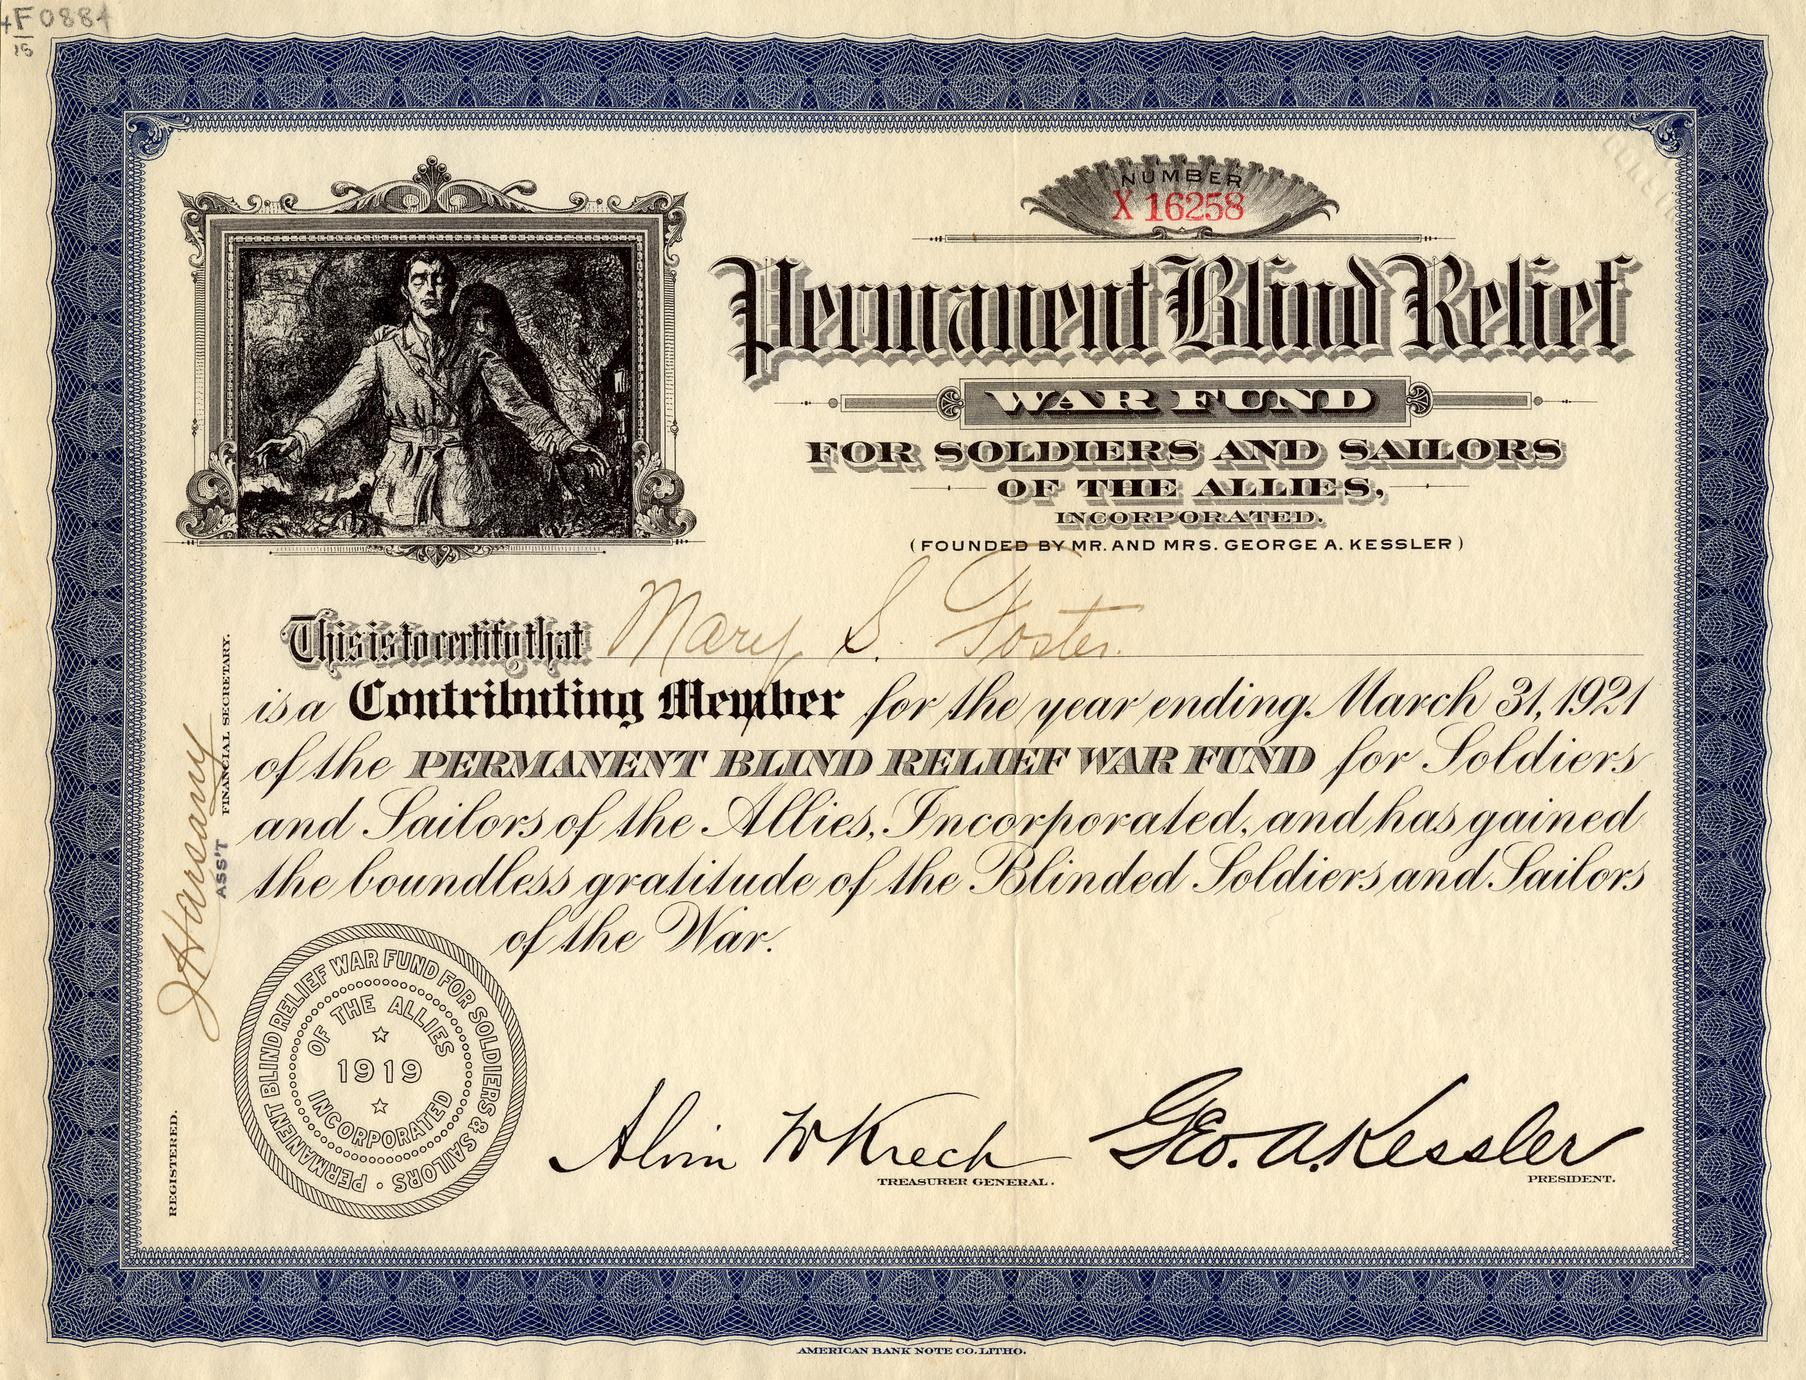 Certificate from the Permament Blind Relief War Fund for Soldiers and Sailors of the Allies